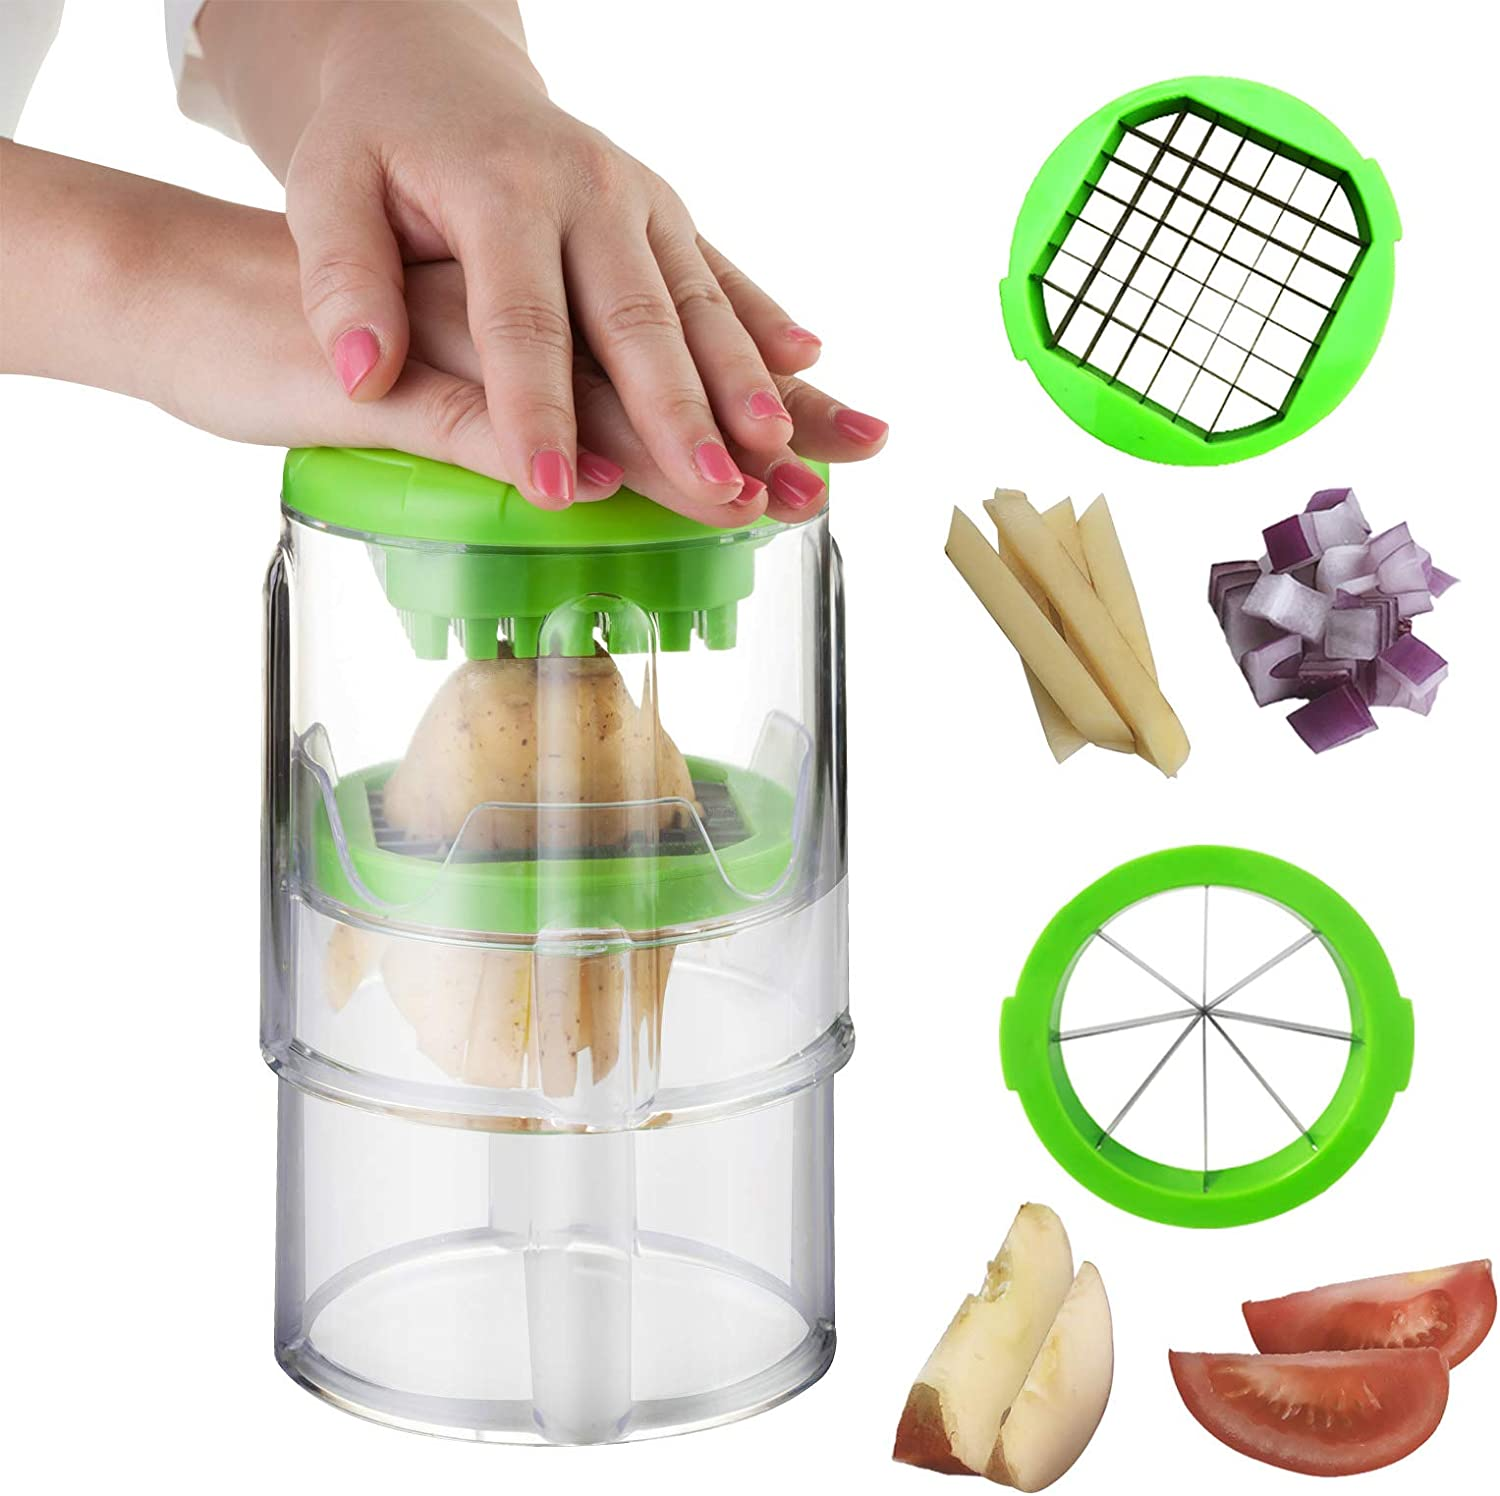 French Fry Cutter Potato Apple Oakland Mall Slicer Us Seattle Mall and Size 2 with Blades